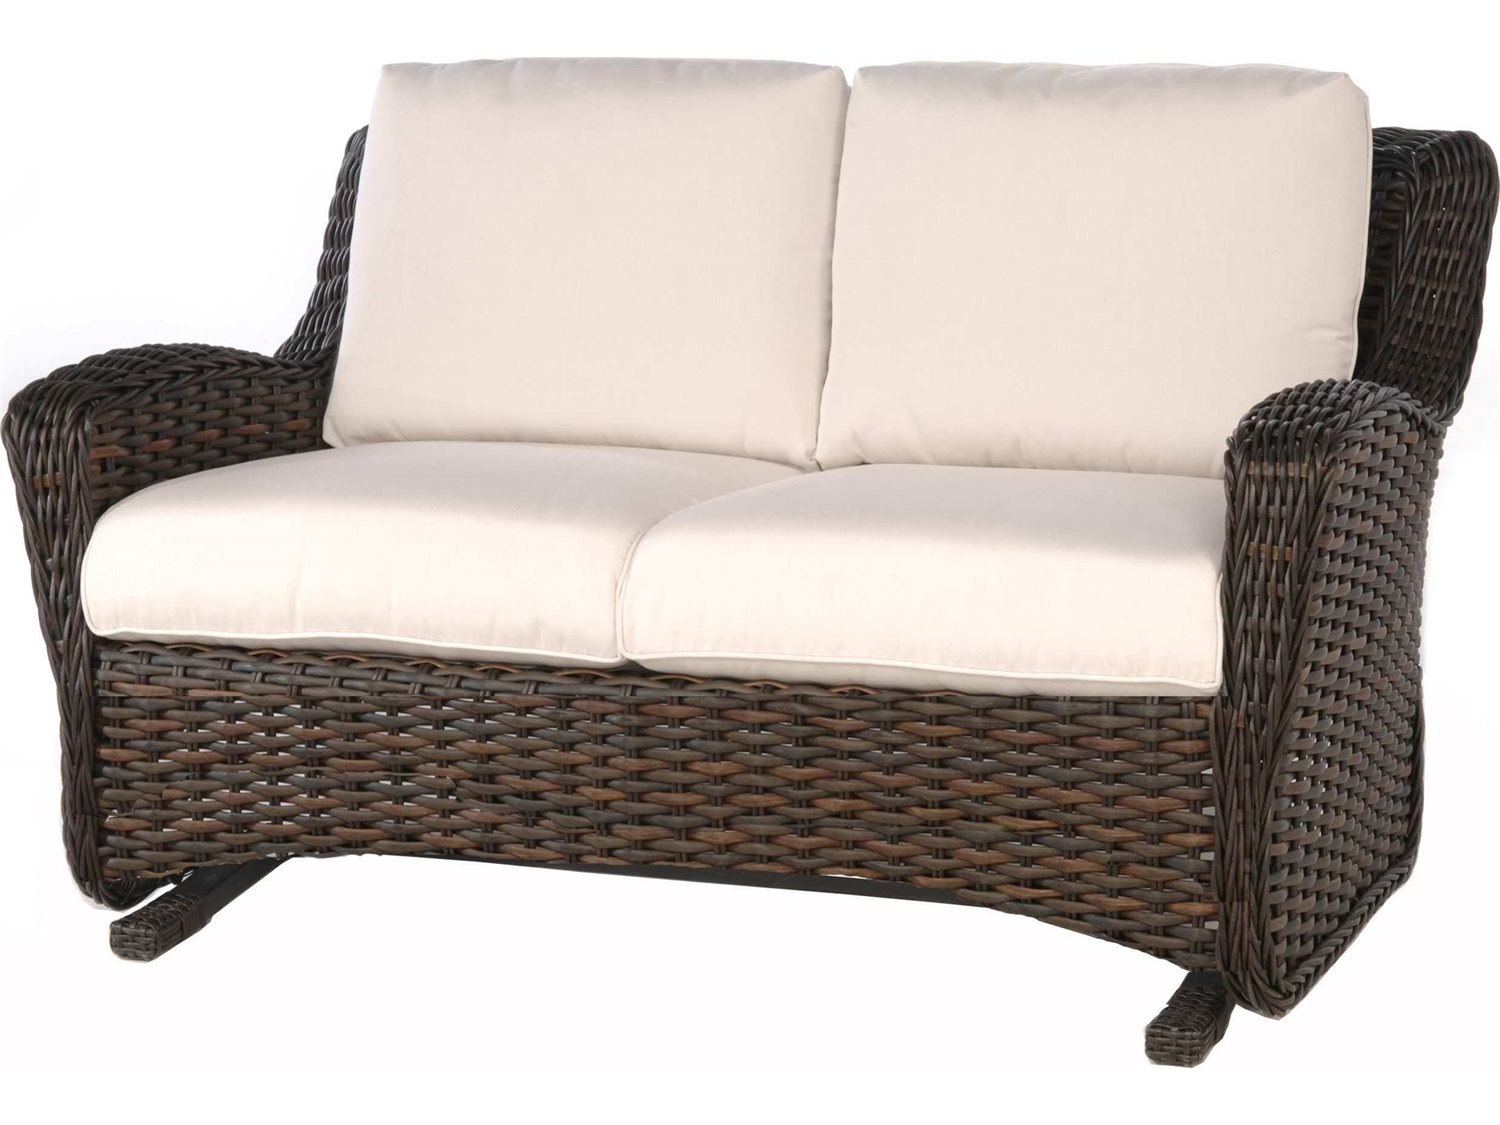 Ebel Dreux Loveseat Loveseat Glider Replacement Cushions